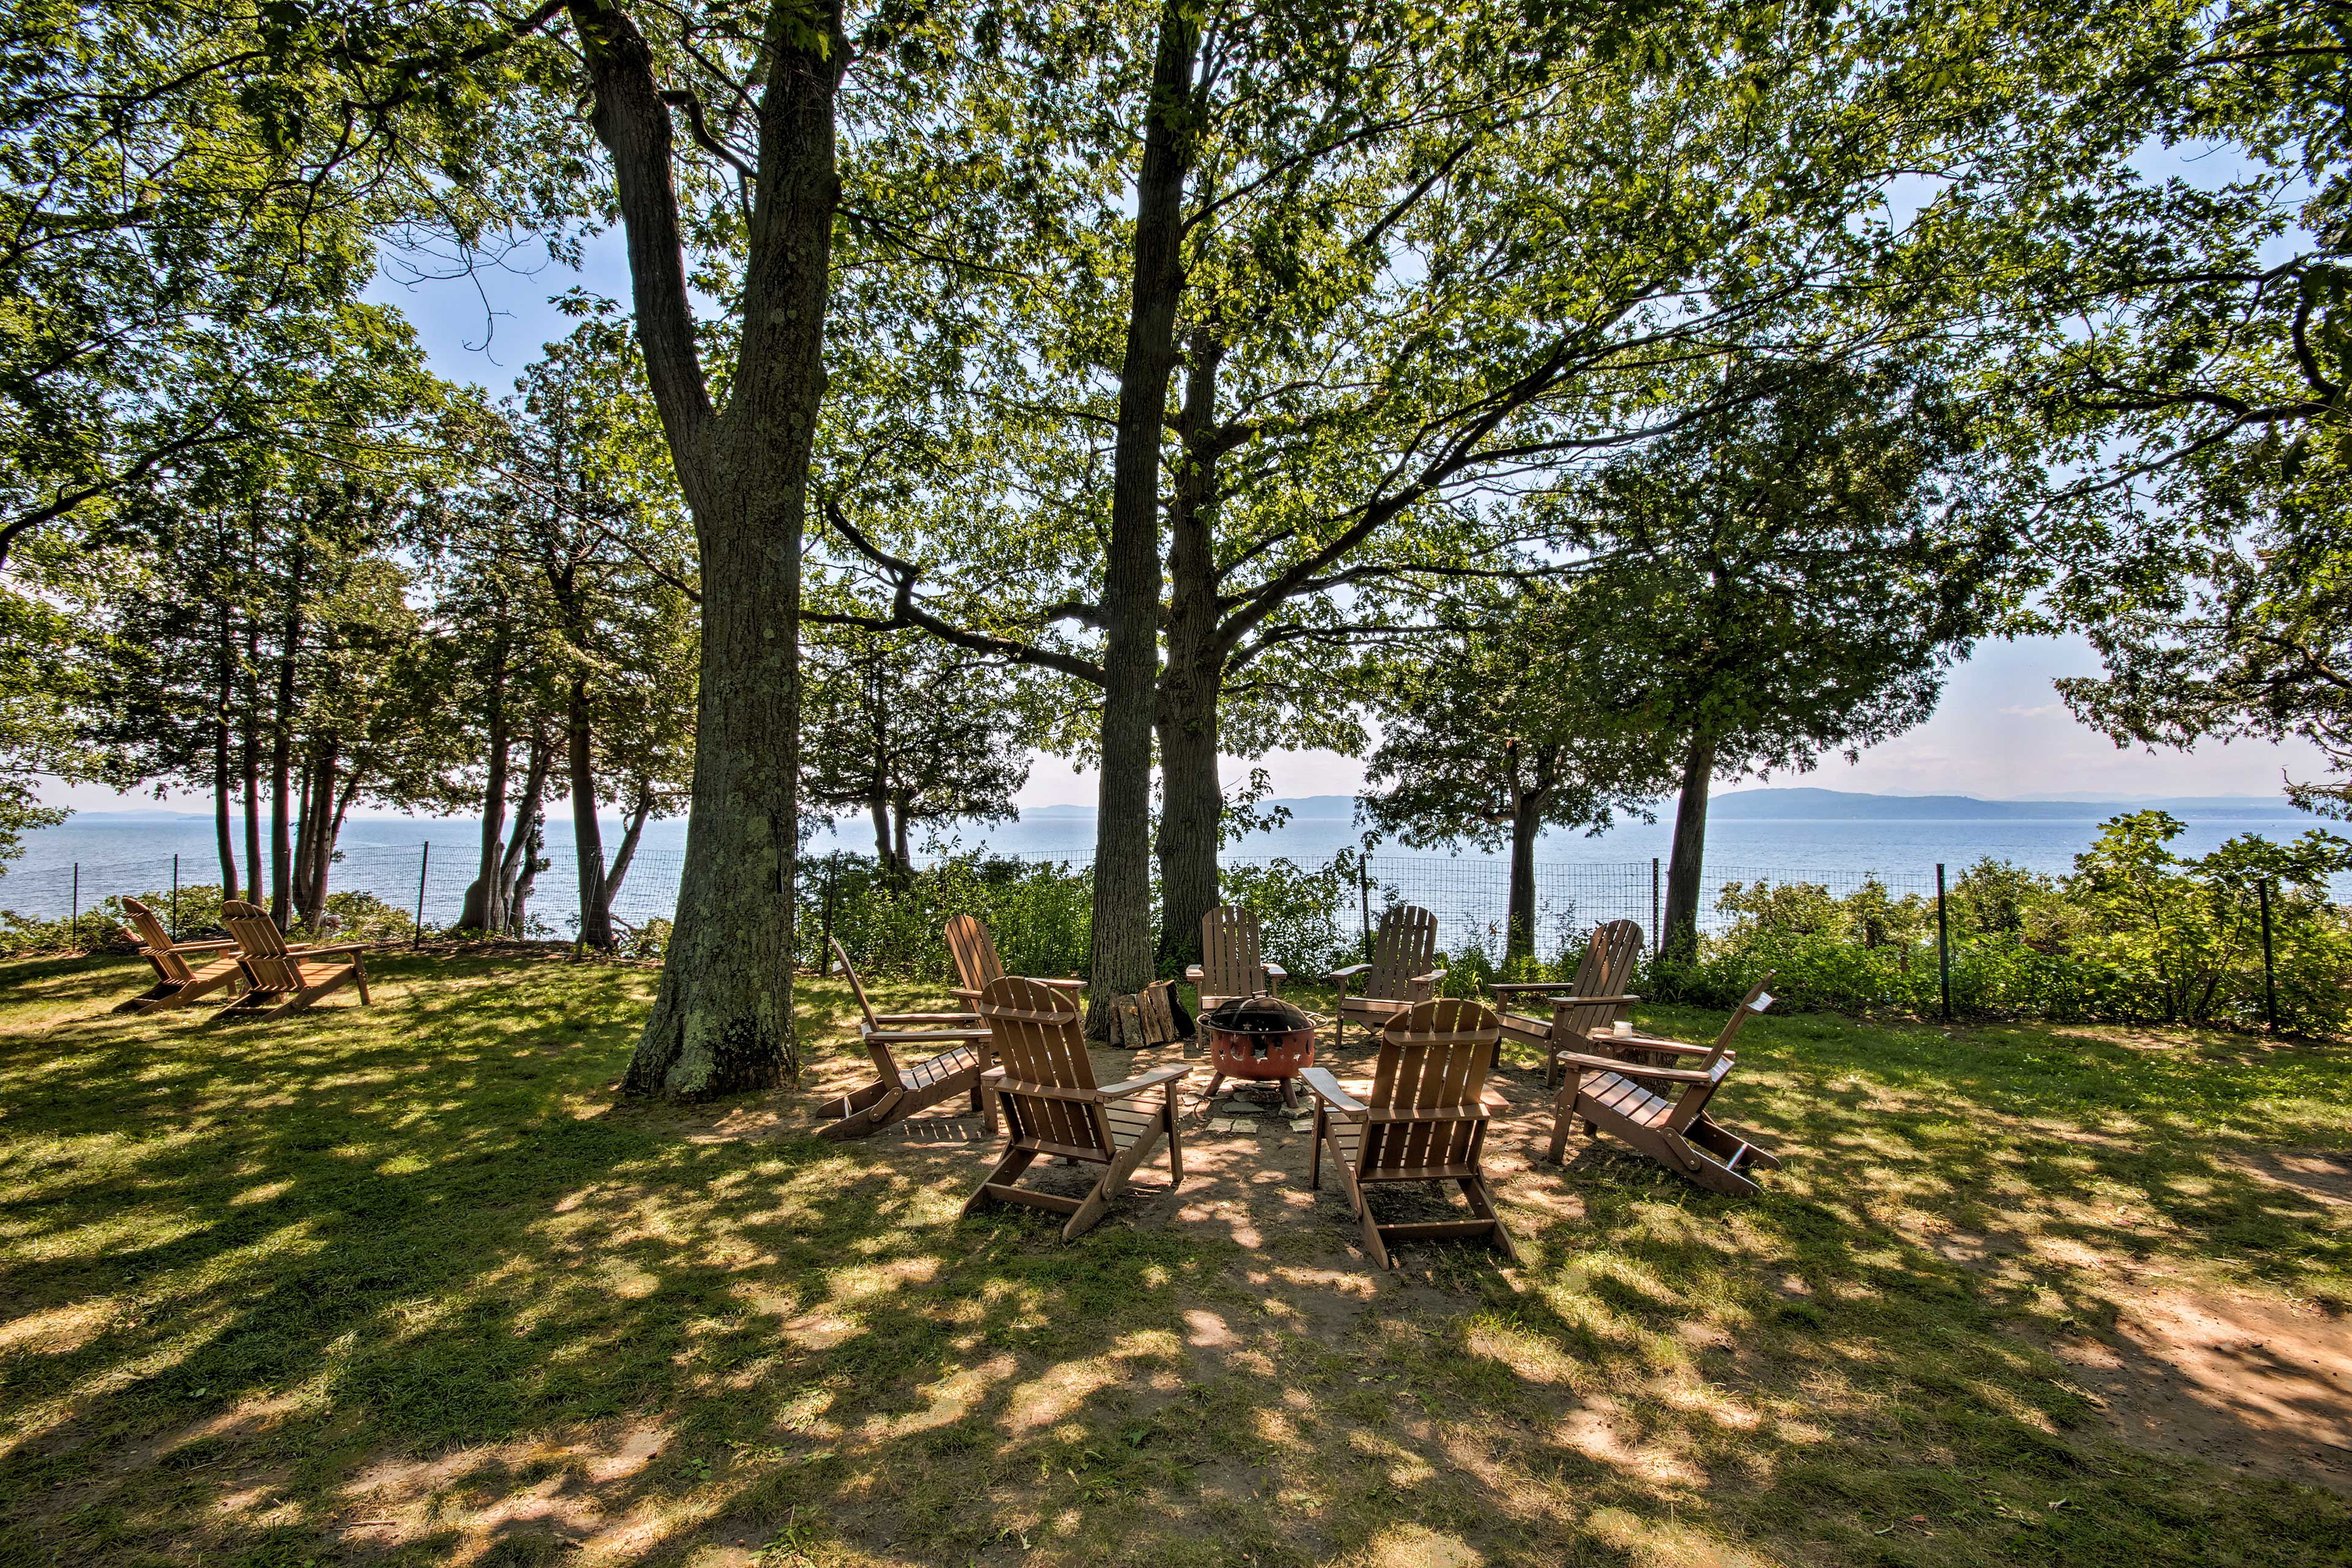 The property sits on a bluff with views of the mountains across the lake!